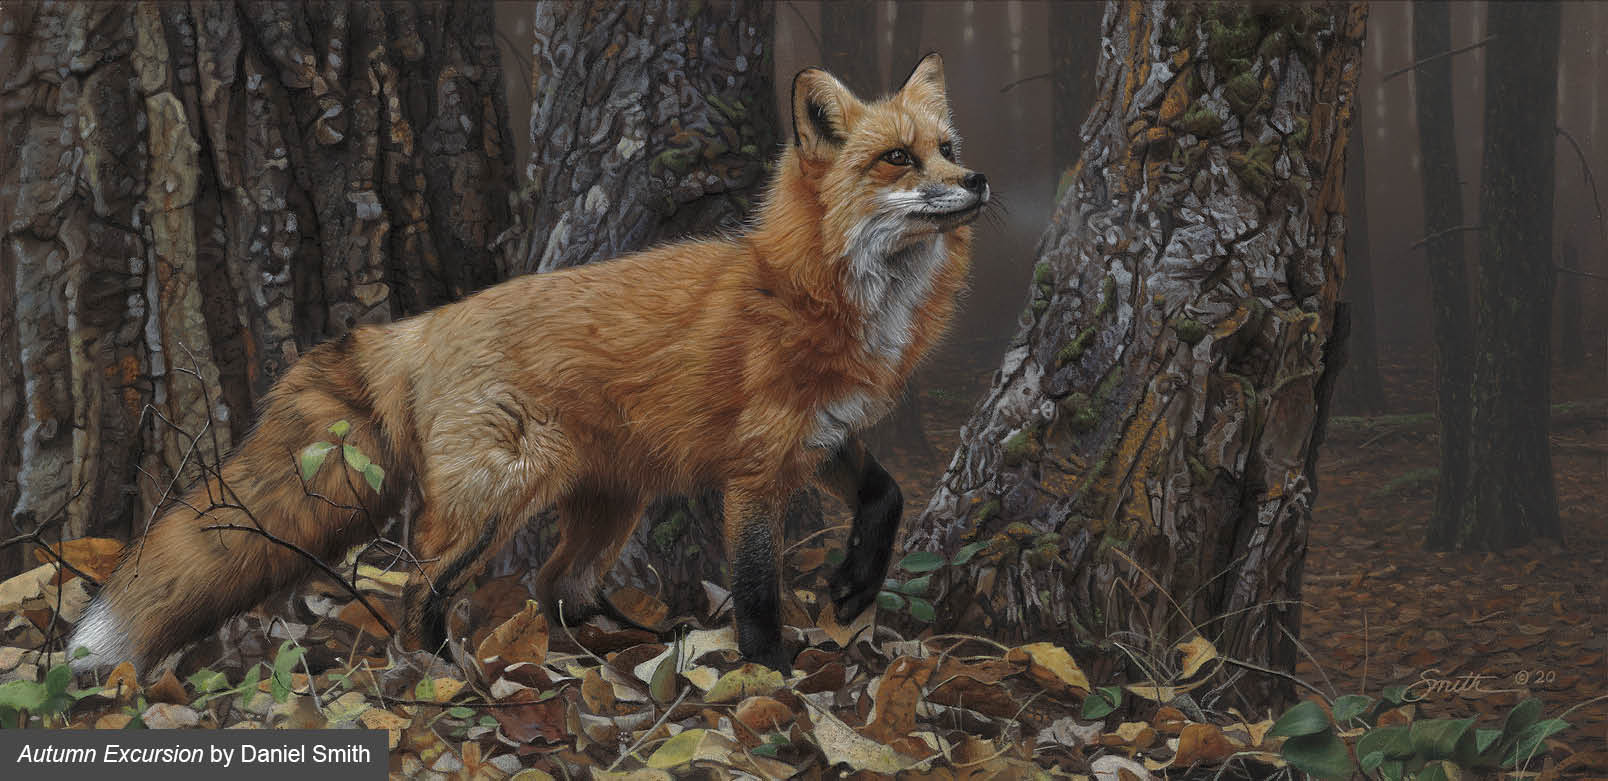 An awesome painting of a Red Fox by Daniel Smith wildlife artist